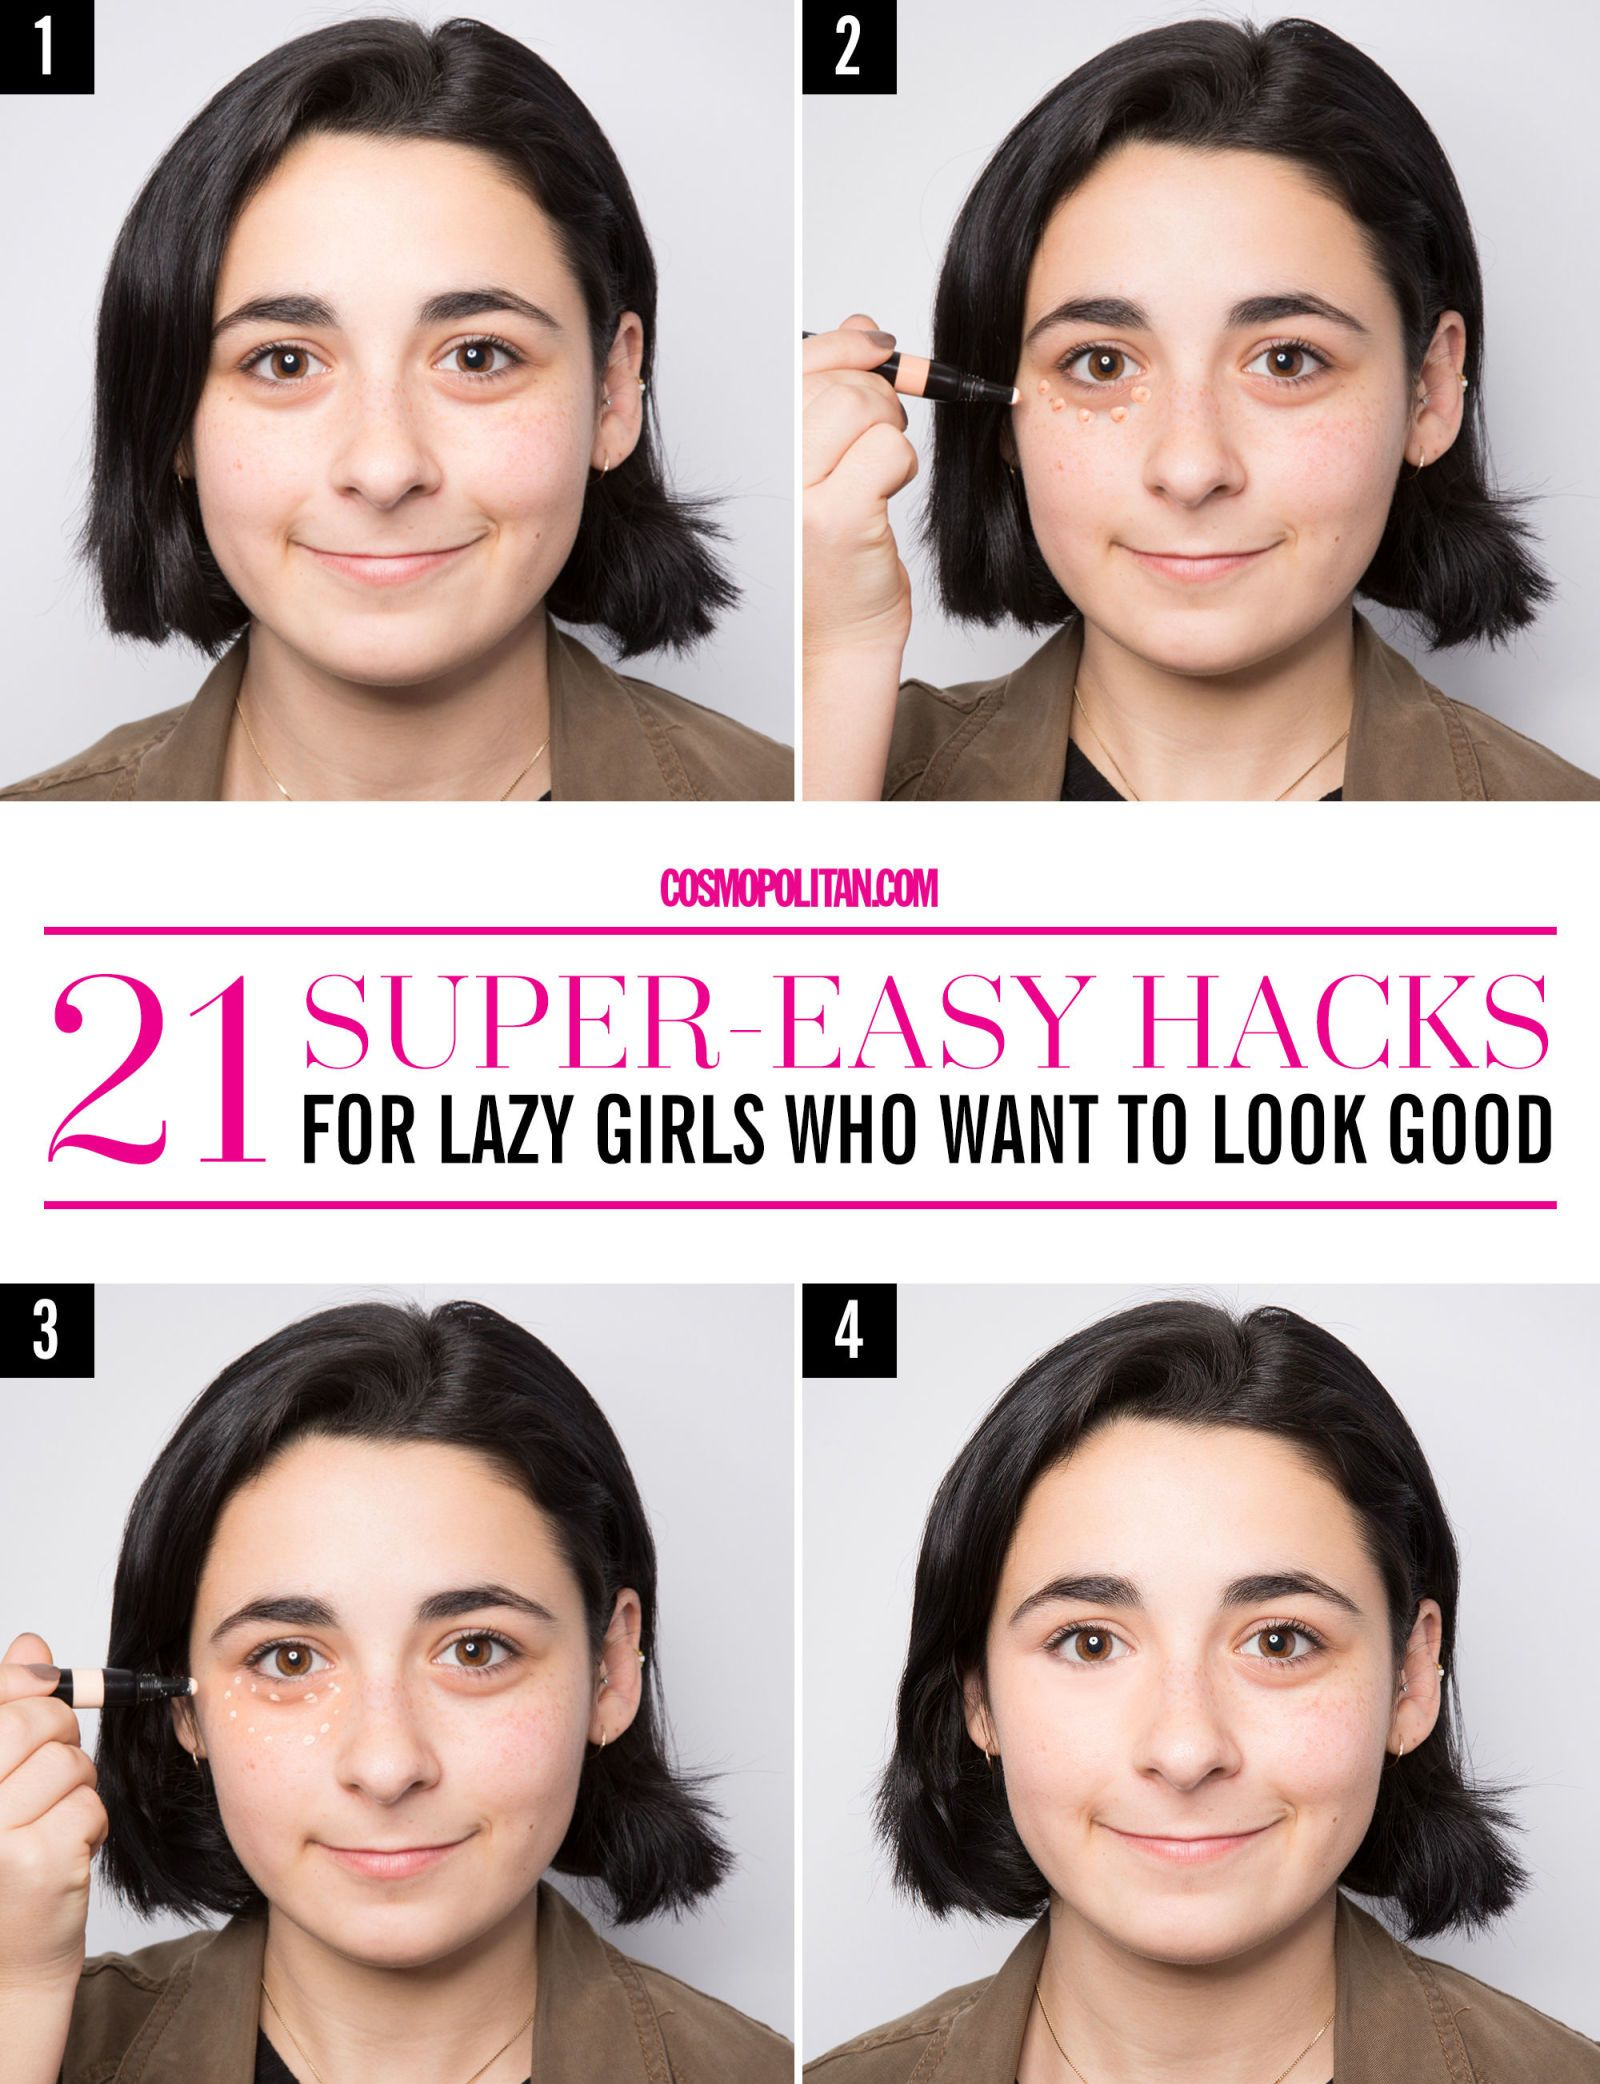 21 Super-Easy Lazy Girl Hacks for Looking Good